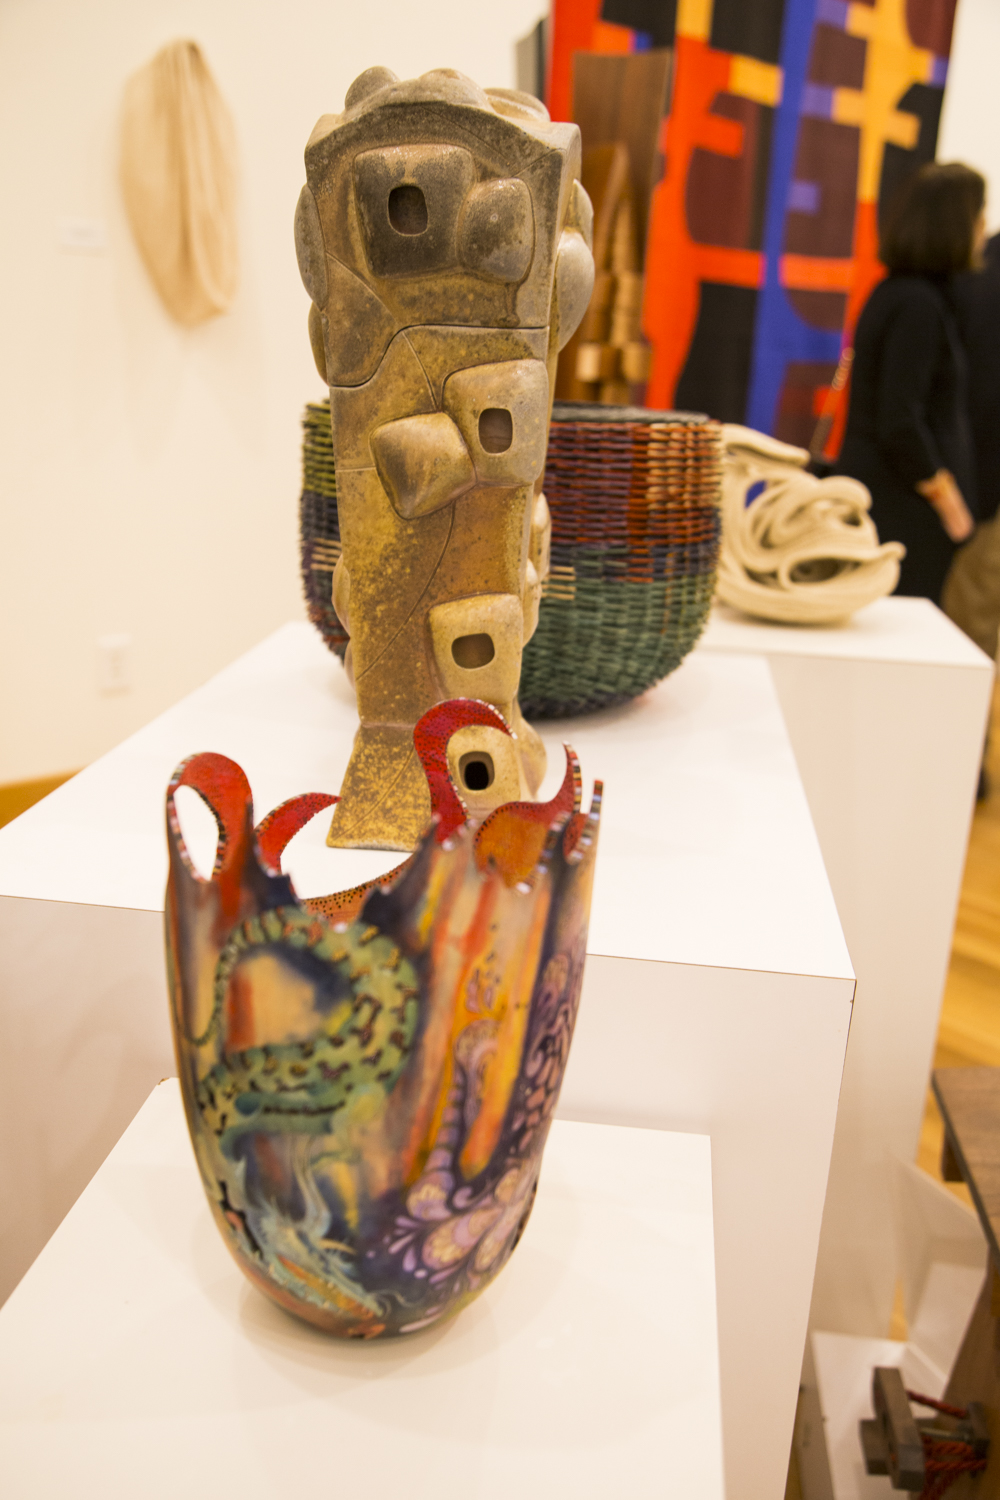 Carol V. Hall with Michael Kehs and Dan Greer (PA),  Dragon Vessel: When Fire Dries a Tear,  and Stephen S. Robison with Kathleen Guess (WA),  Pasta Box (behind vessel)